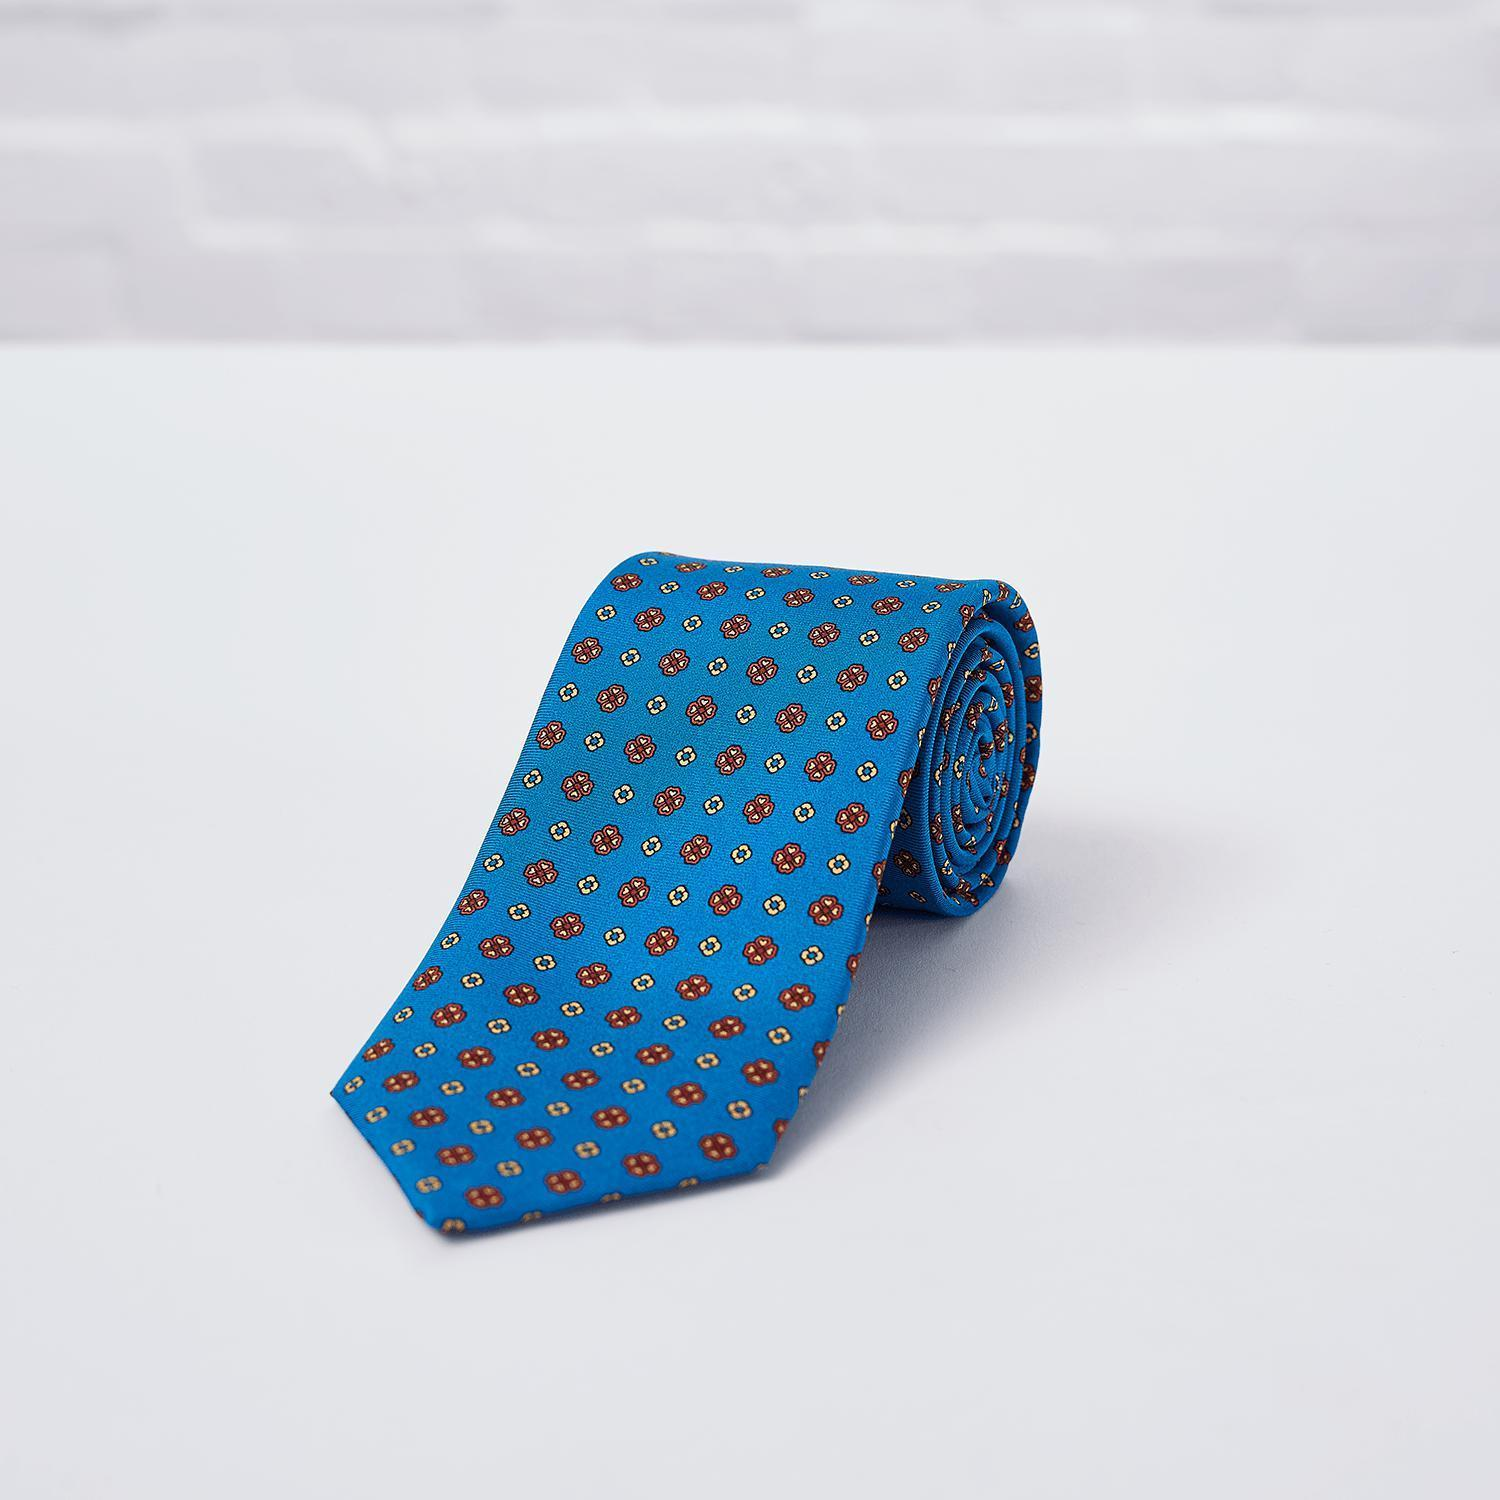 Blue Geometric Flower Printed Silk Tie - British Made